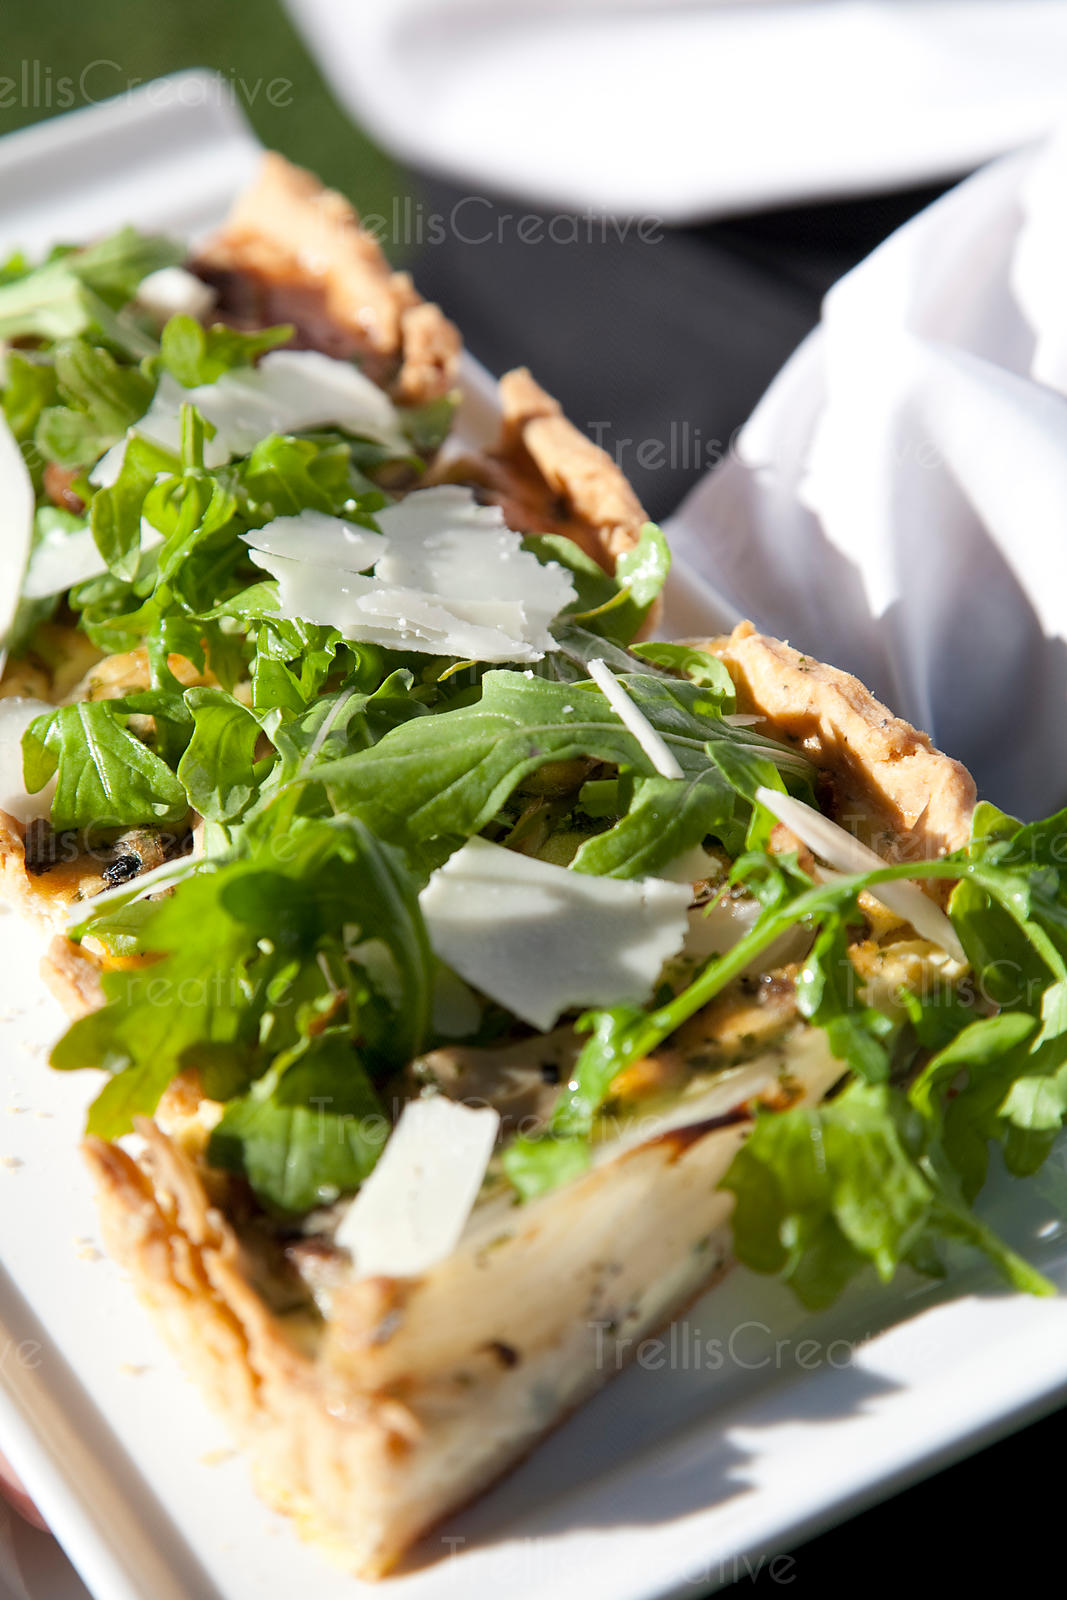 Potato and bacon tarte appetizer with arugula and shaved parmesan cheese